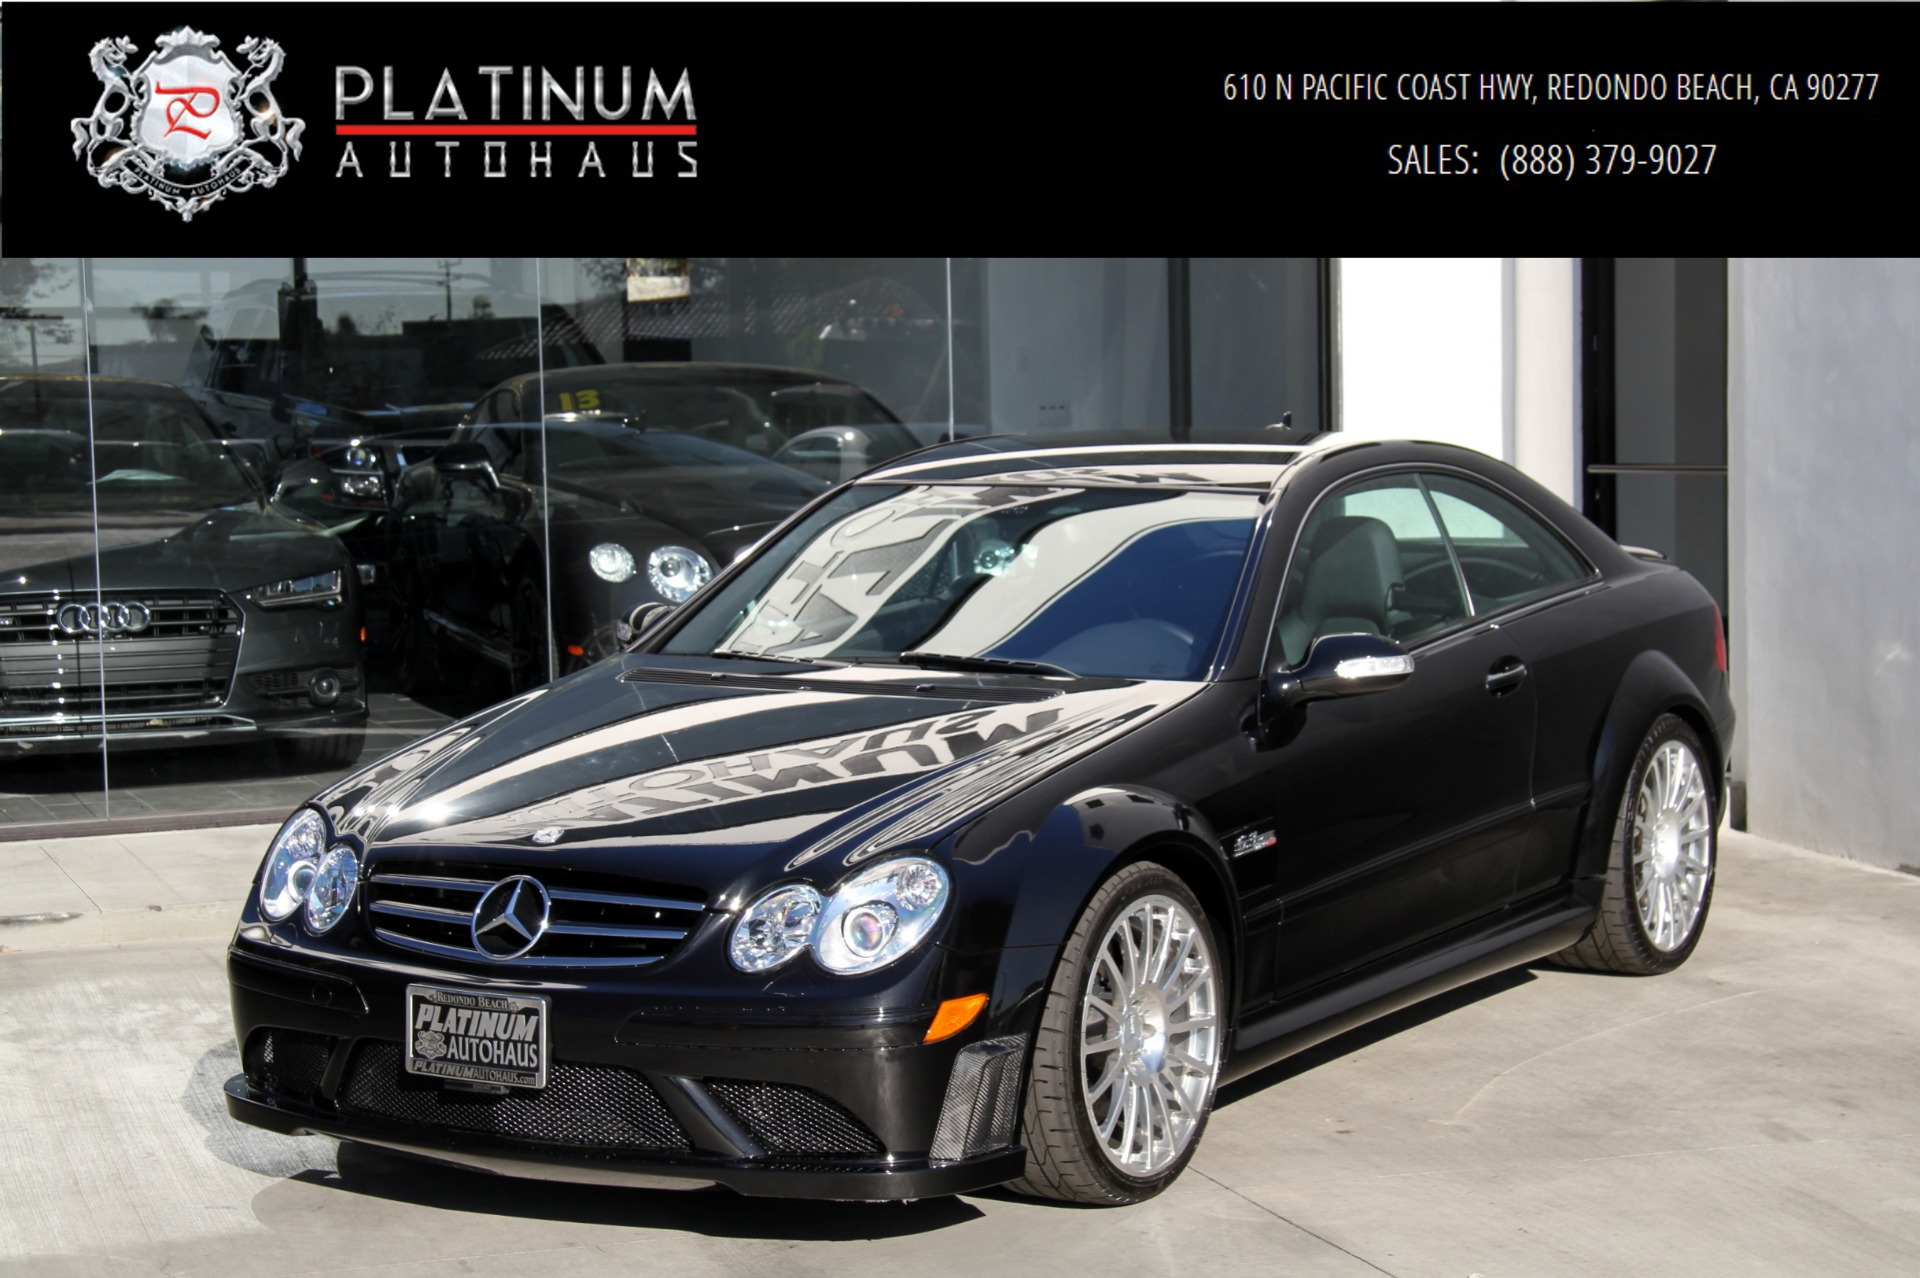 2008 Mercedes Benz Clk 63 Amg Black Series Stock 6069 For